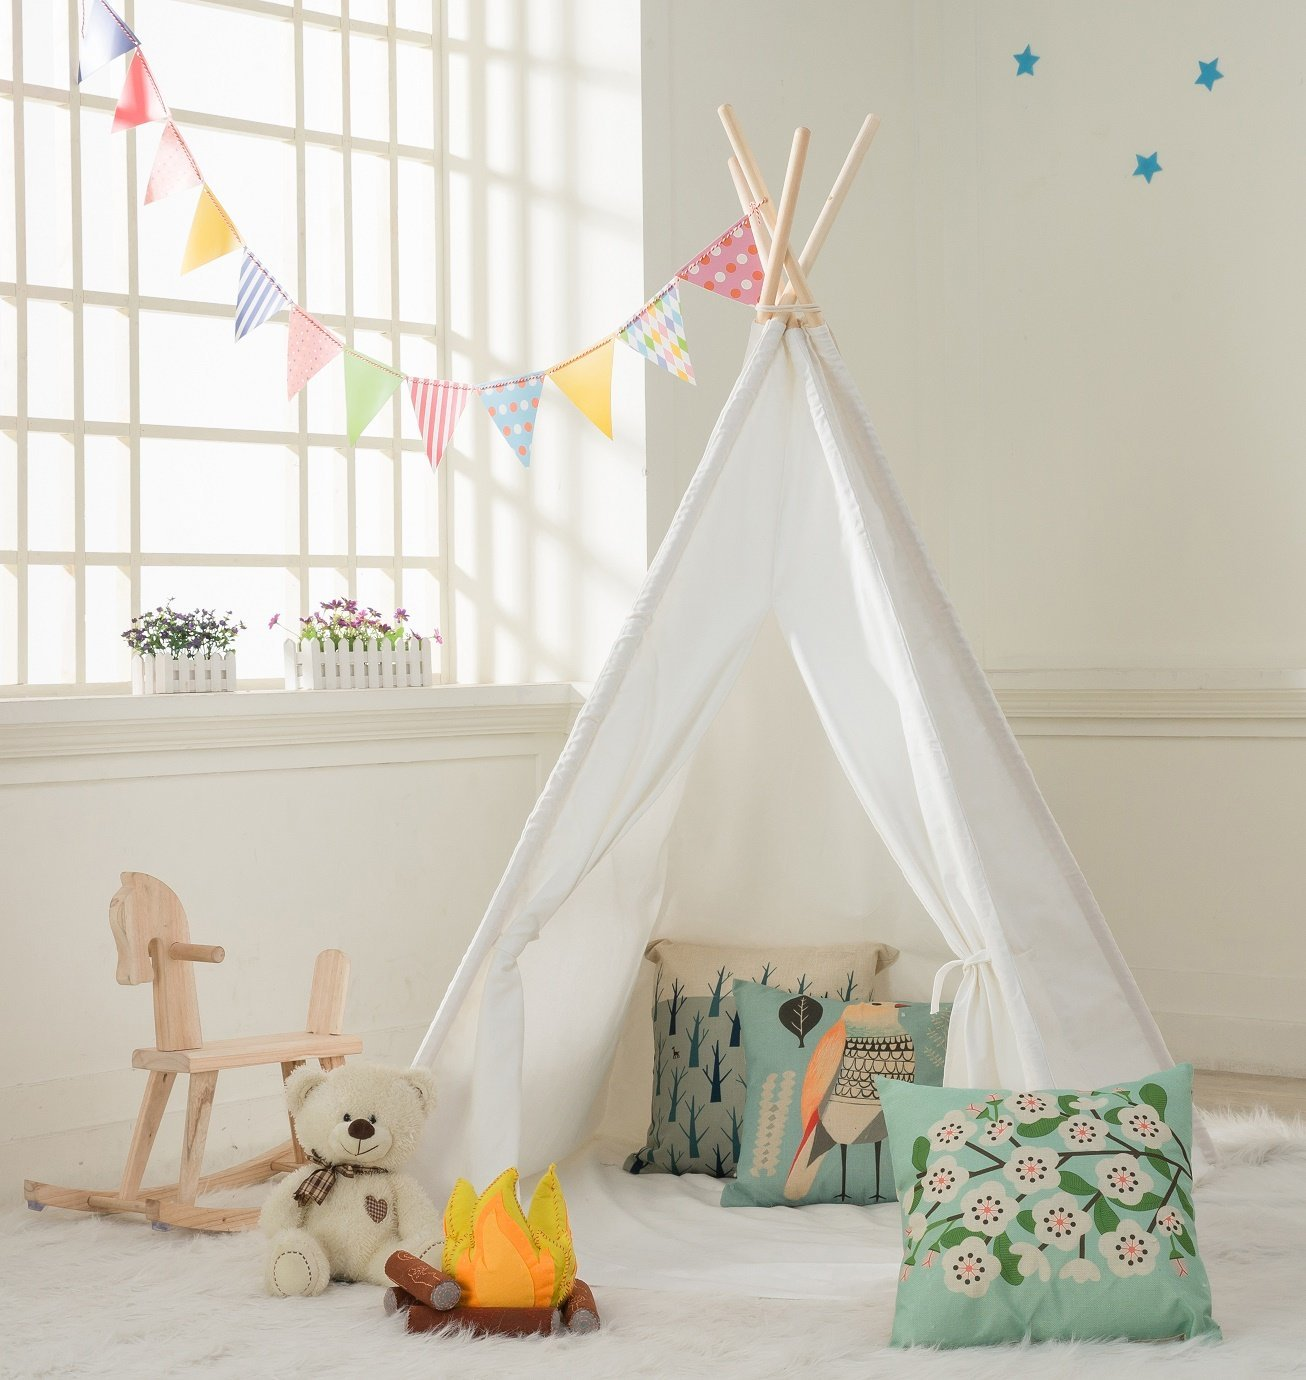 Kids Teepee Tent -100% Natural Canvas Children Tent with Mat